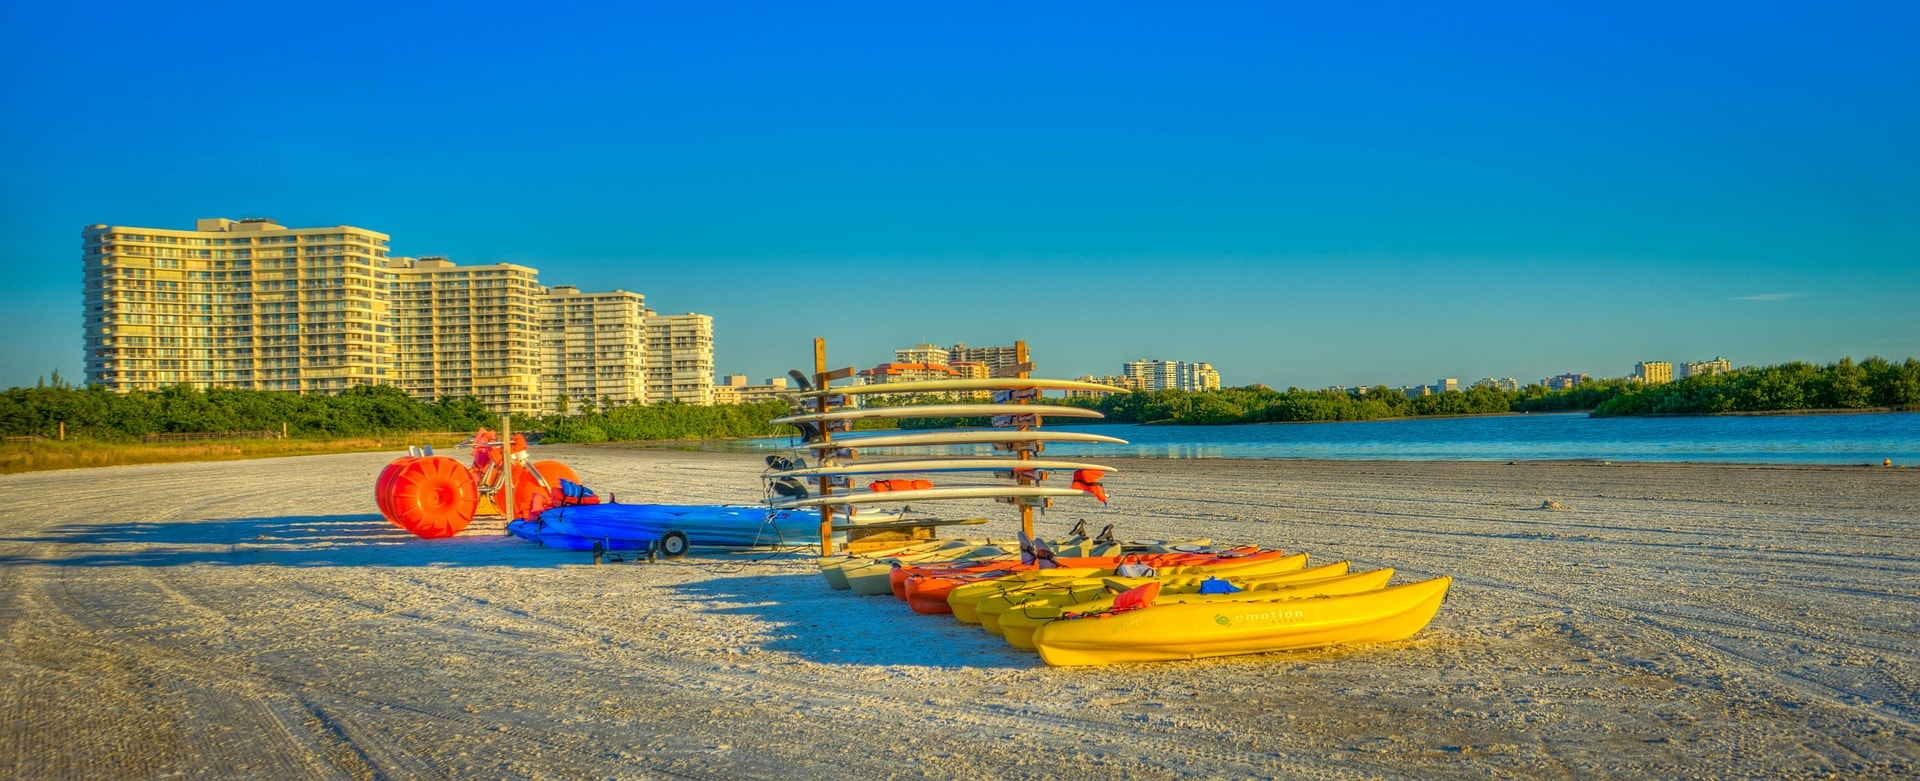 Fun things to Do on a Day Trip to Marco Island, FL : Tiger Tail Beach